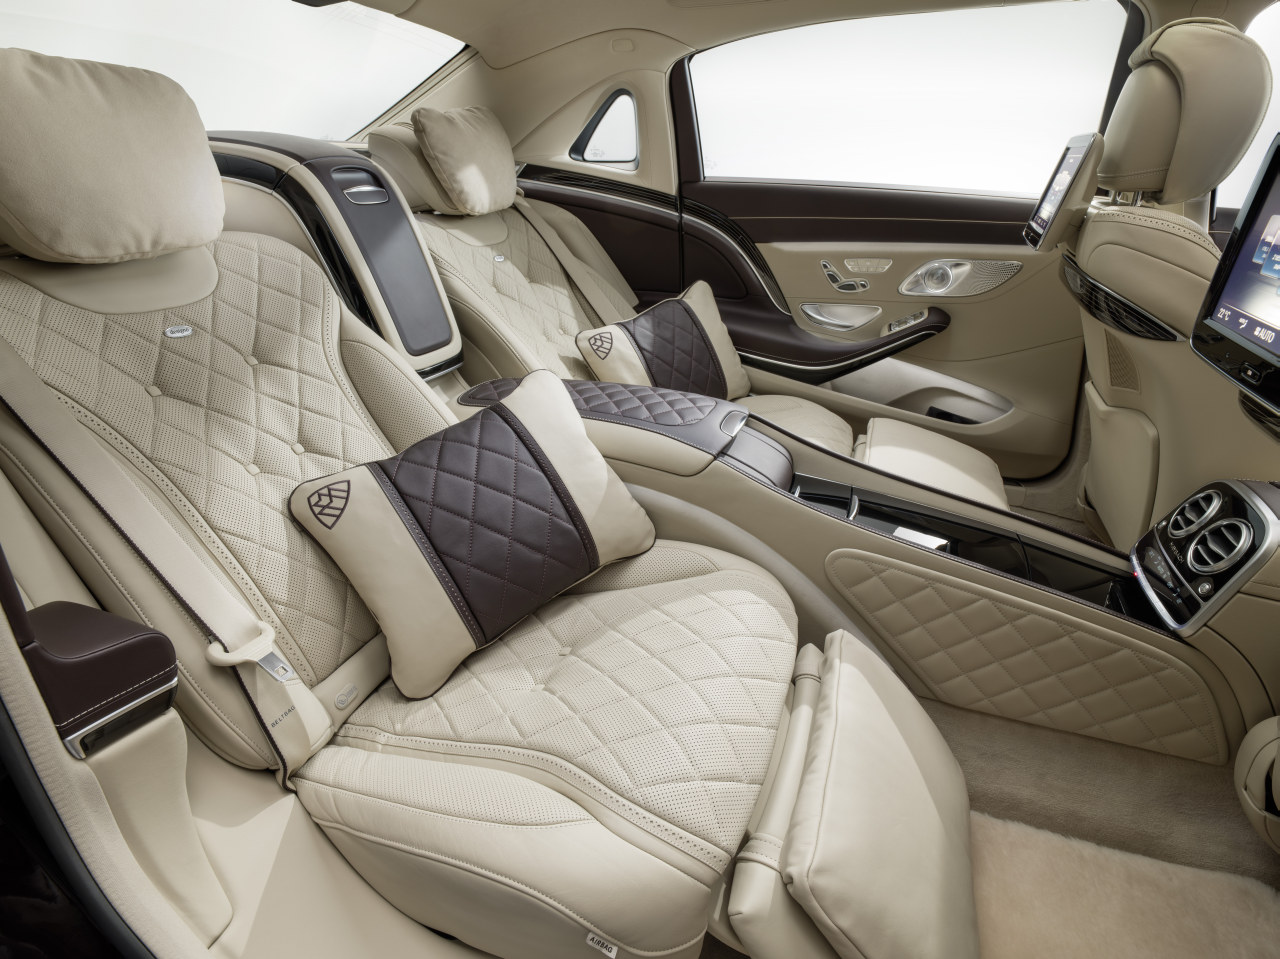 foto mercedes mercedes maybach s klasse mercedes maybach s klasse 2015 038. Black Bedroom Furniture Sets. Home Design Ideas